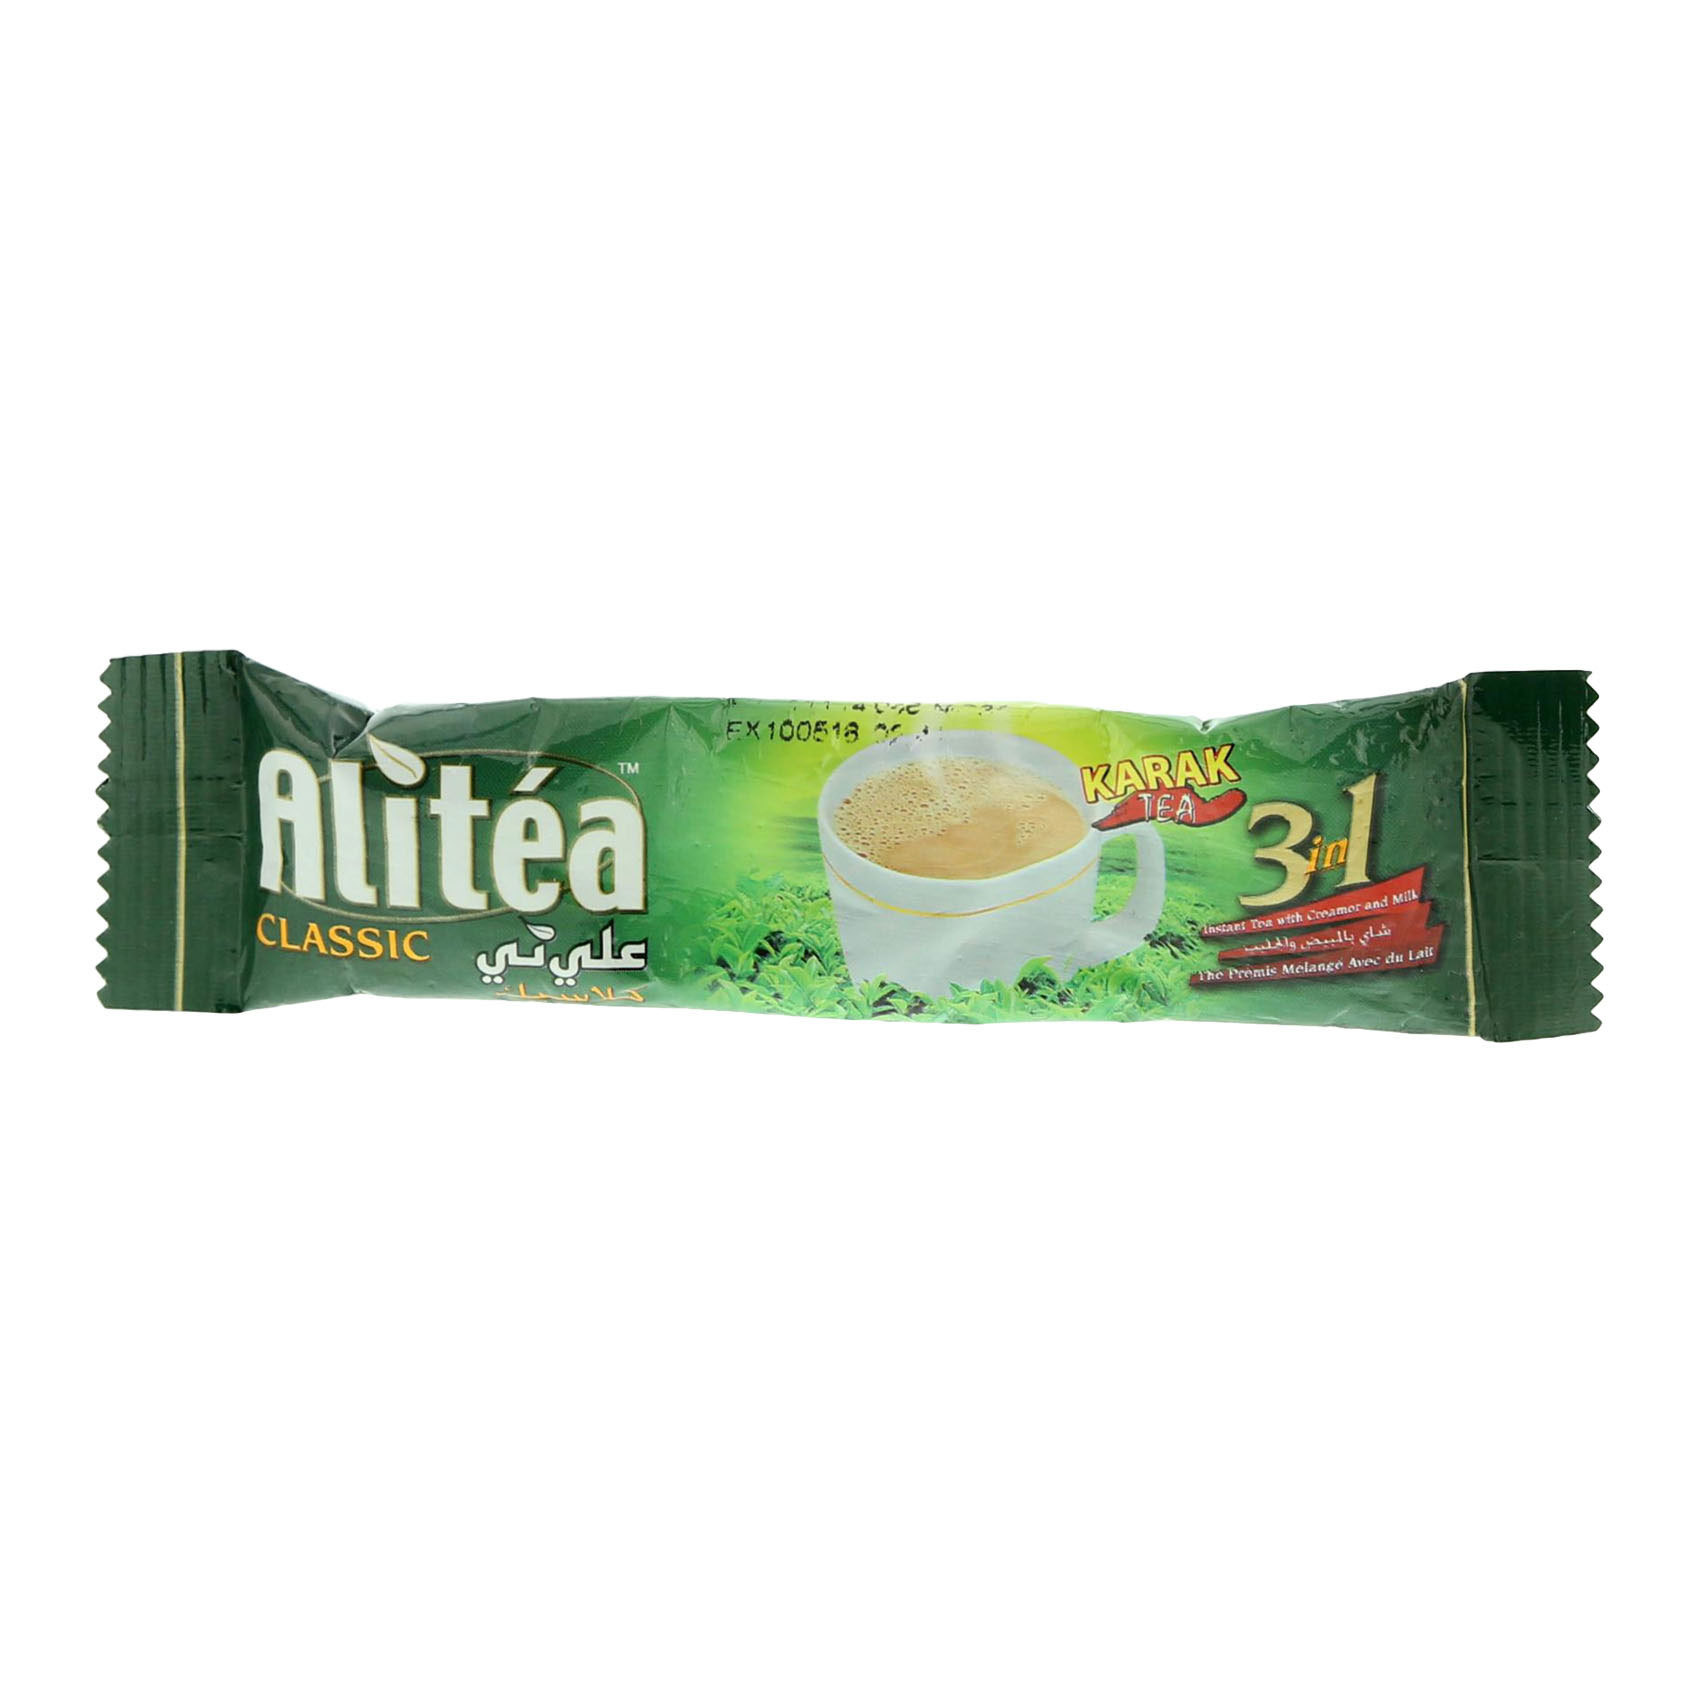 ALI TEA LATTE CLASSIC  3IN1 20G